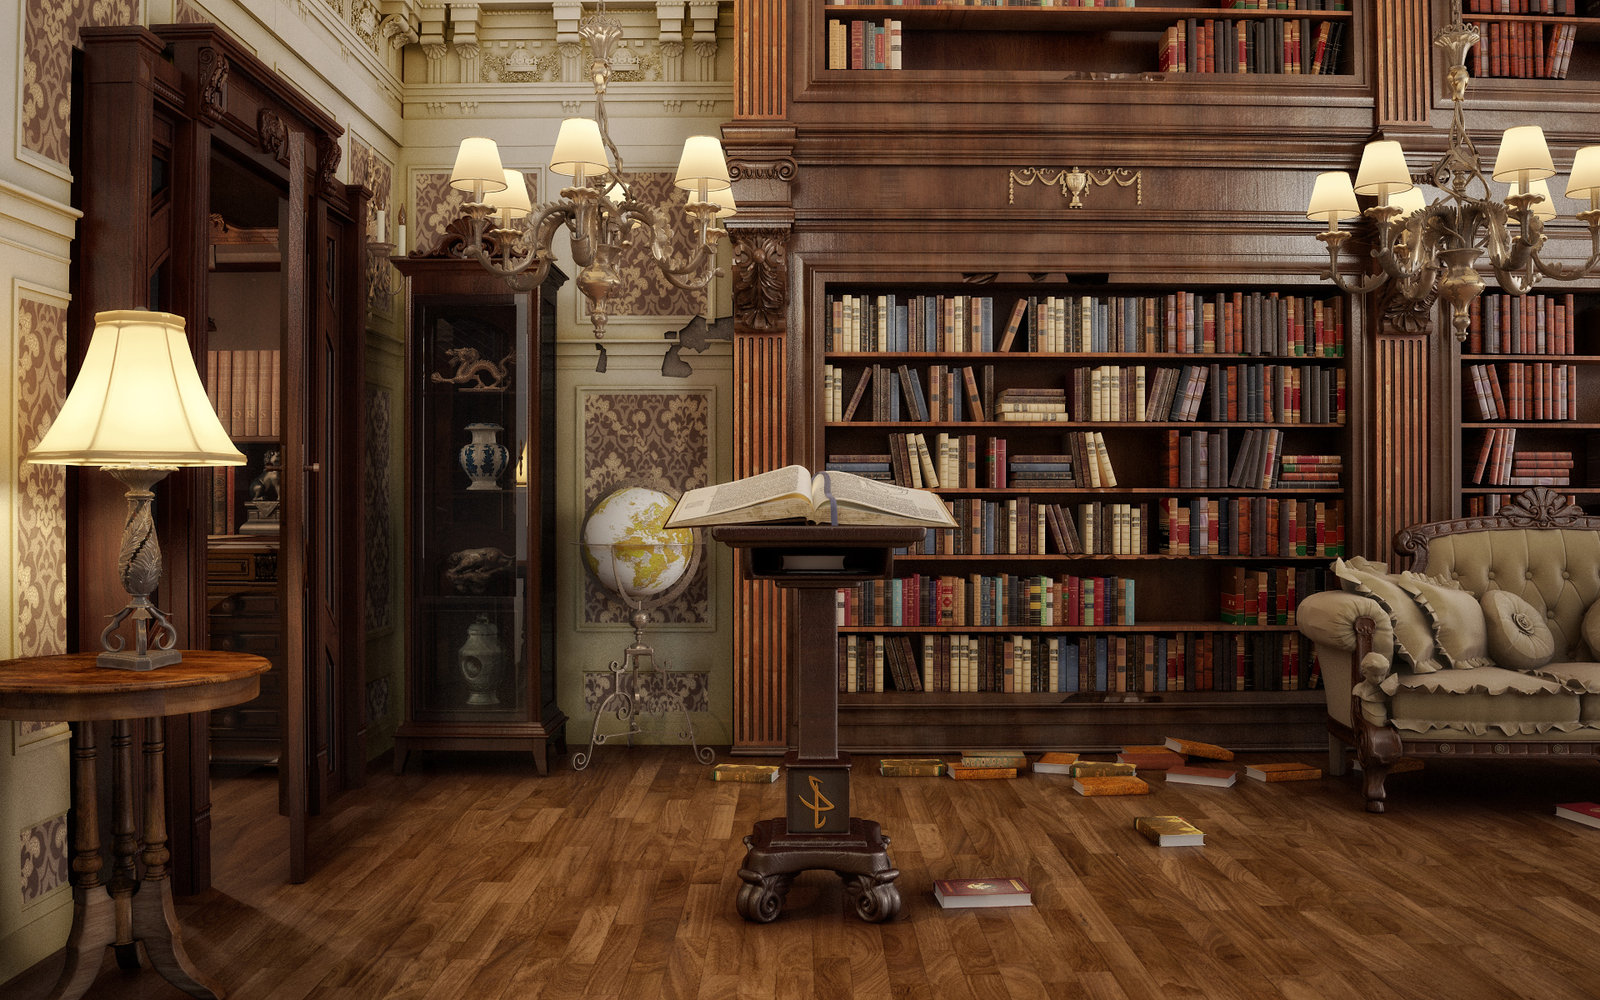 library_by_sanfranguy-d5f9ob4